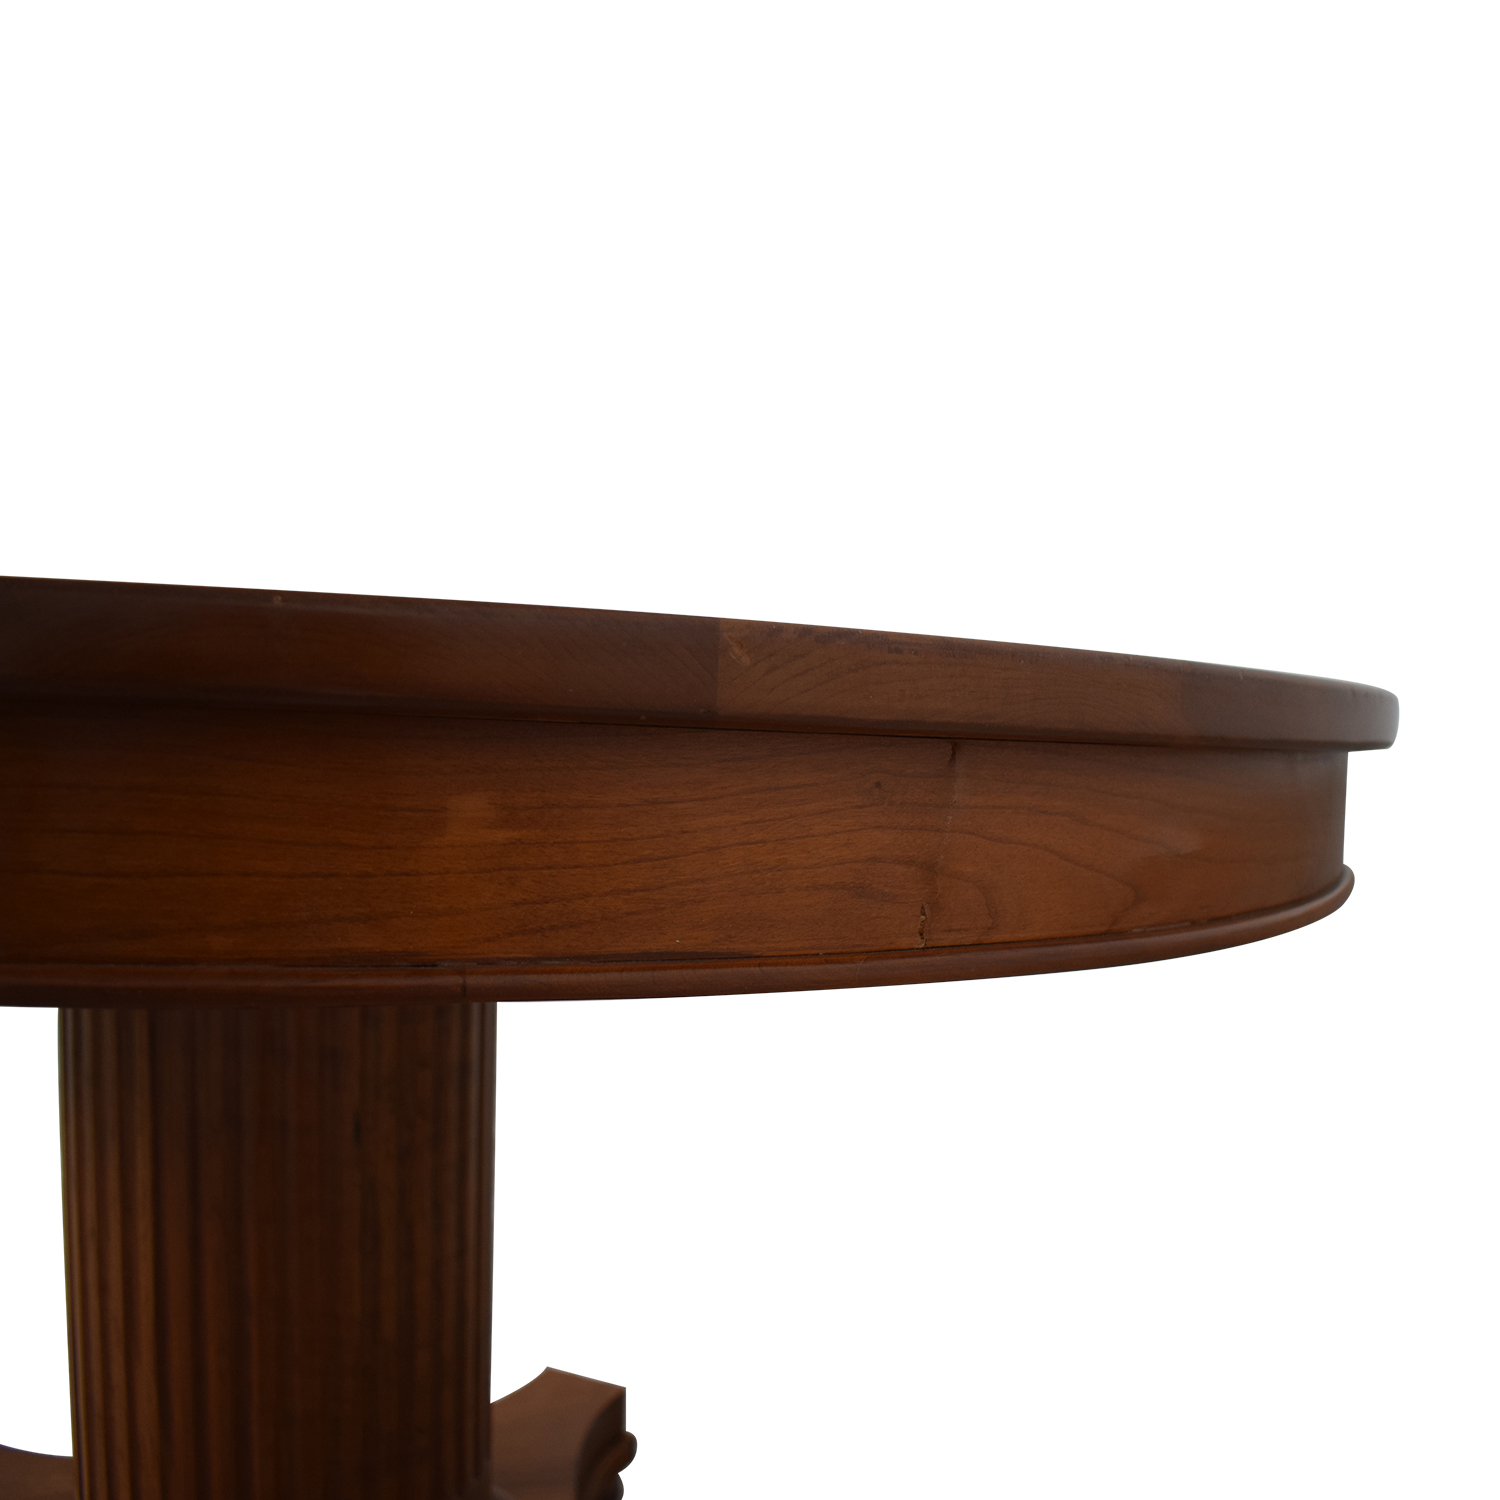 Wood Round Dinner Table dimensions